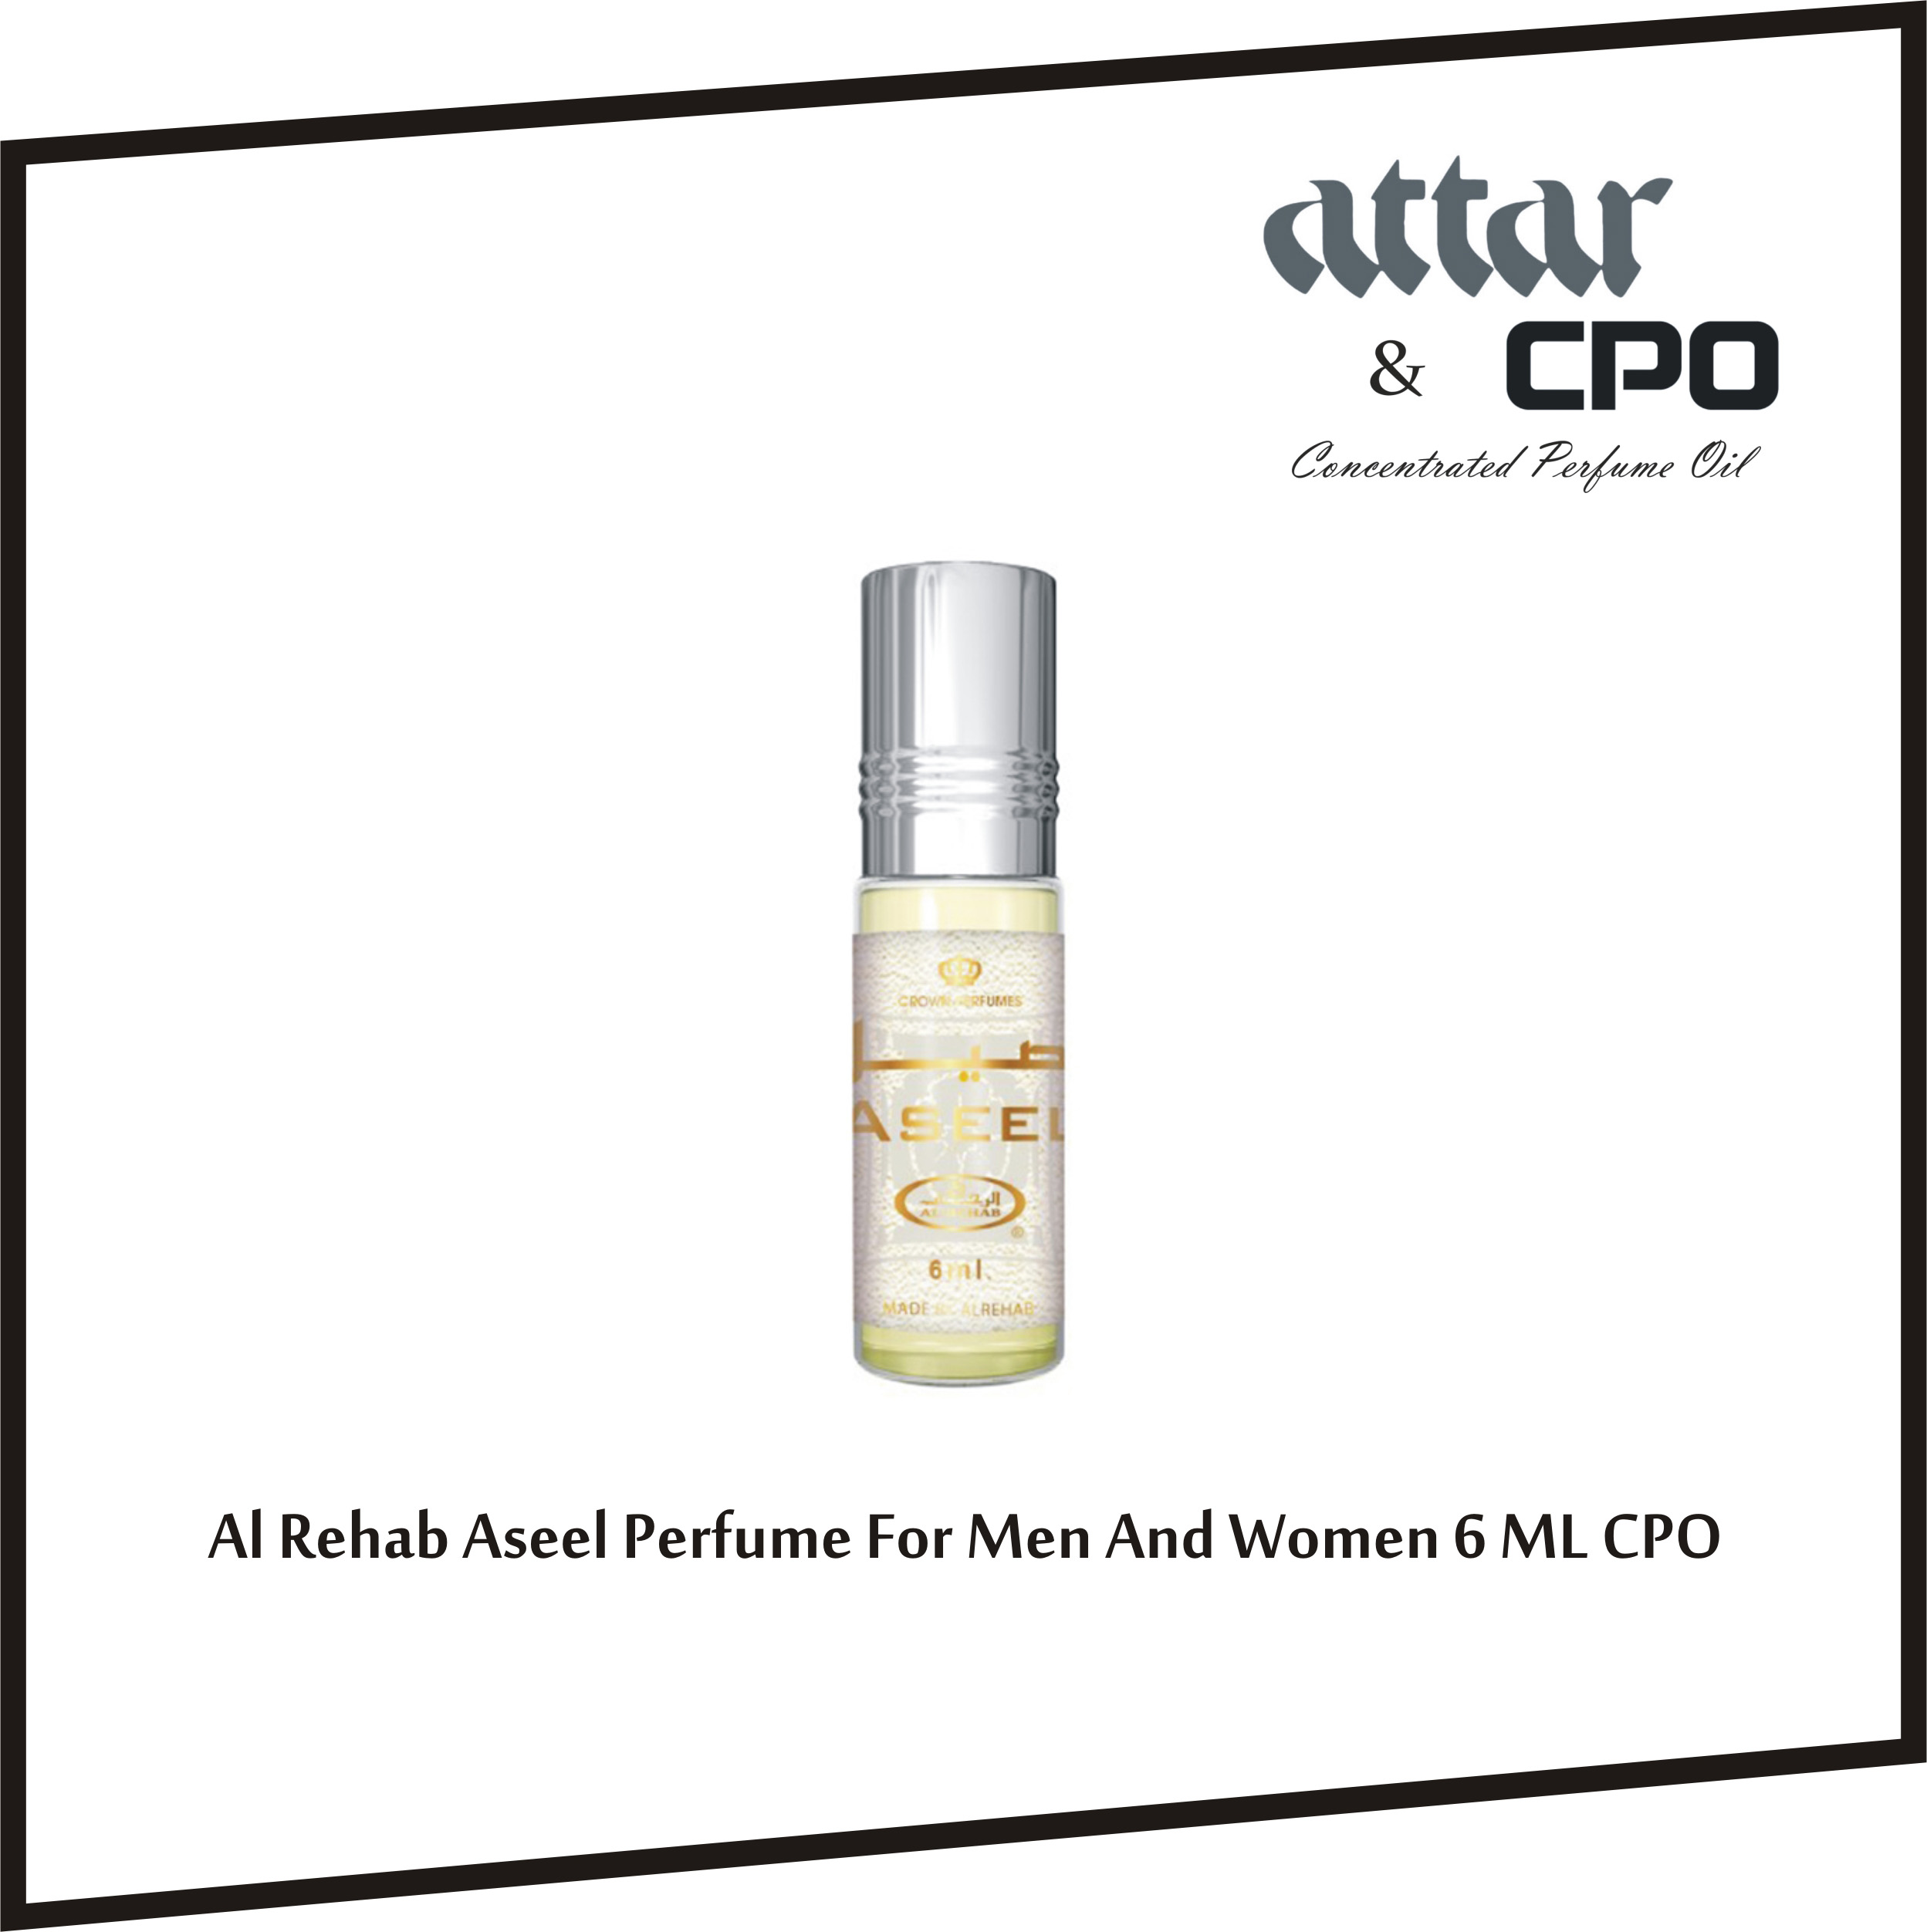 al-rehab-aseel-perfume-for-men-and-women